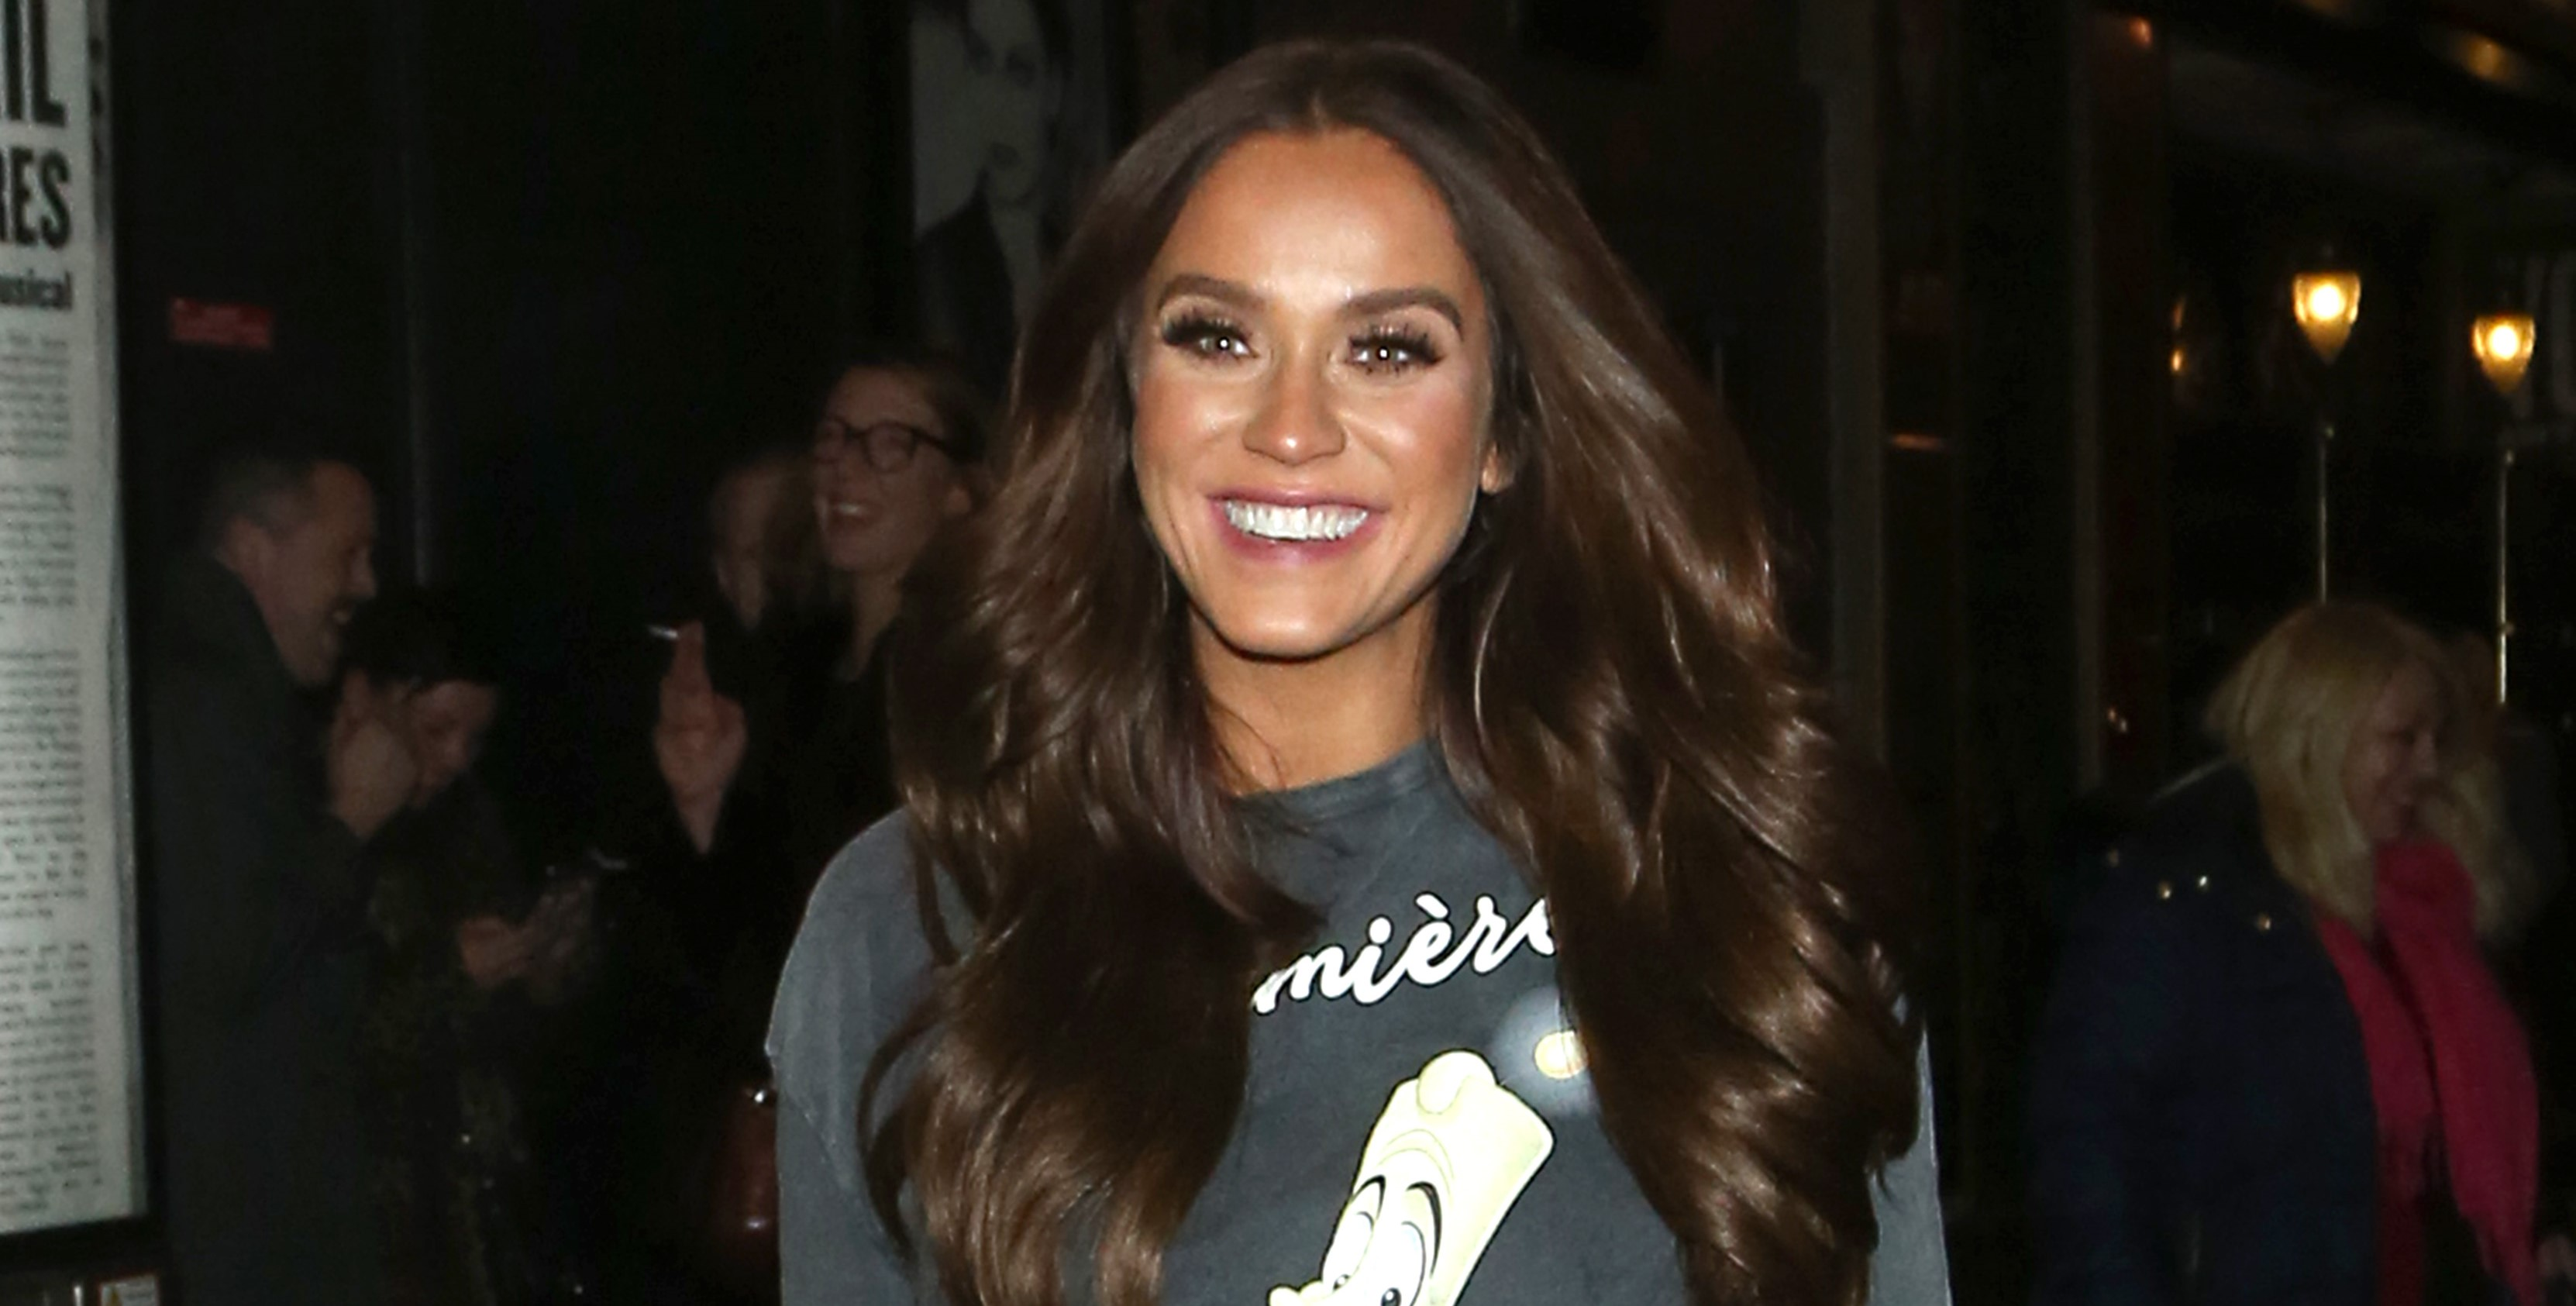 Vicky Pattison reveals she's sad, lonely and feels like a fraud